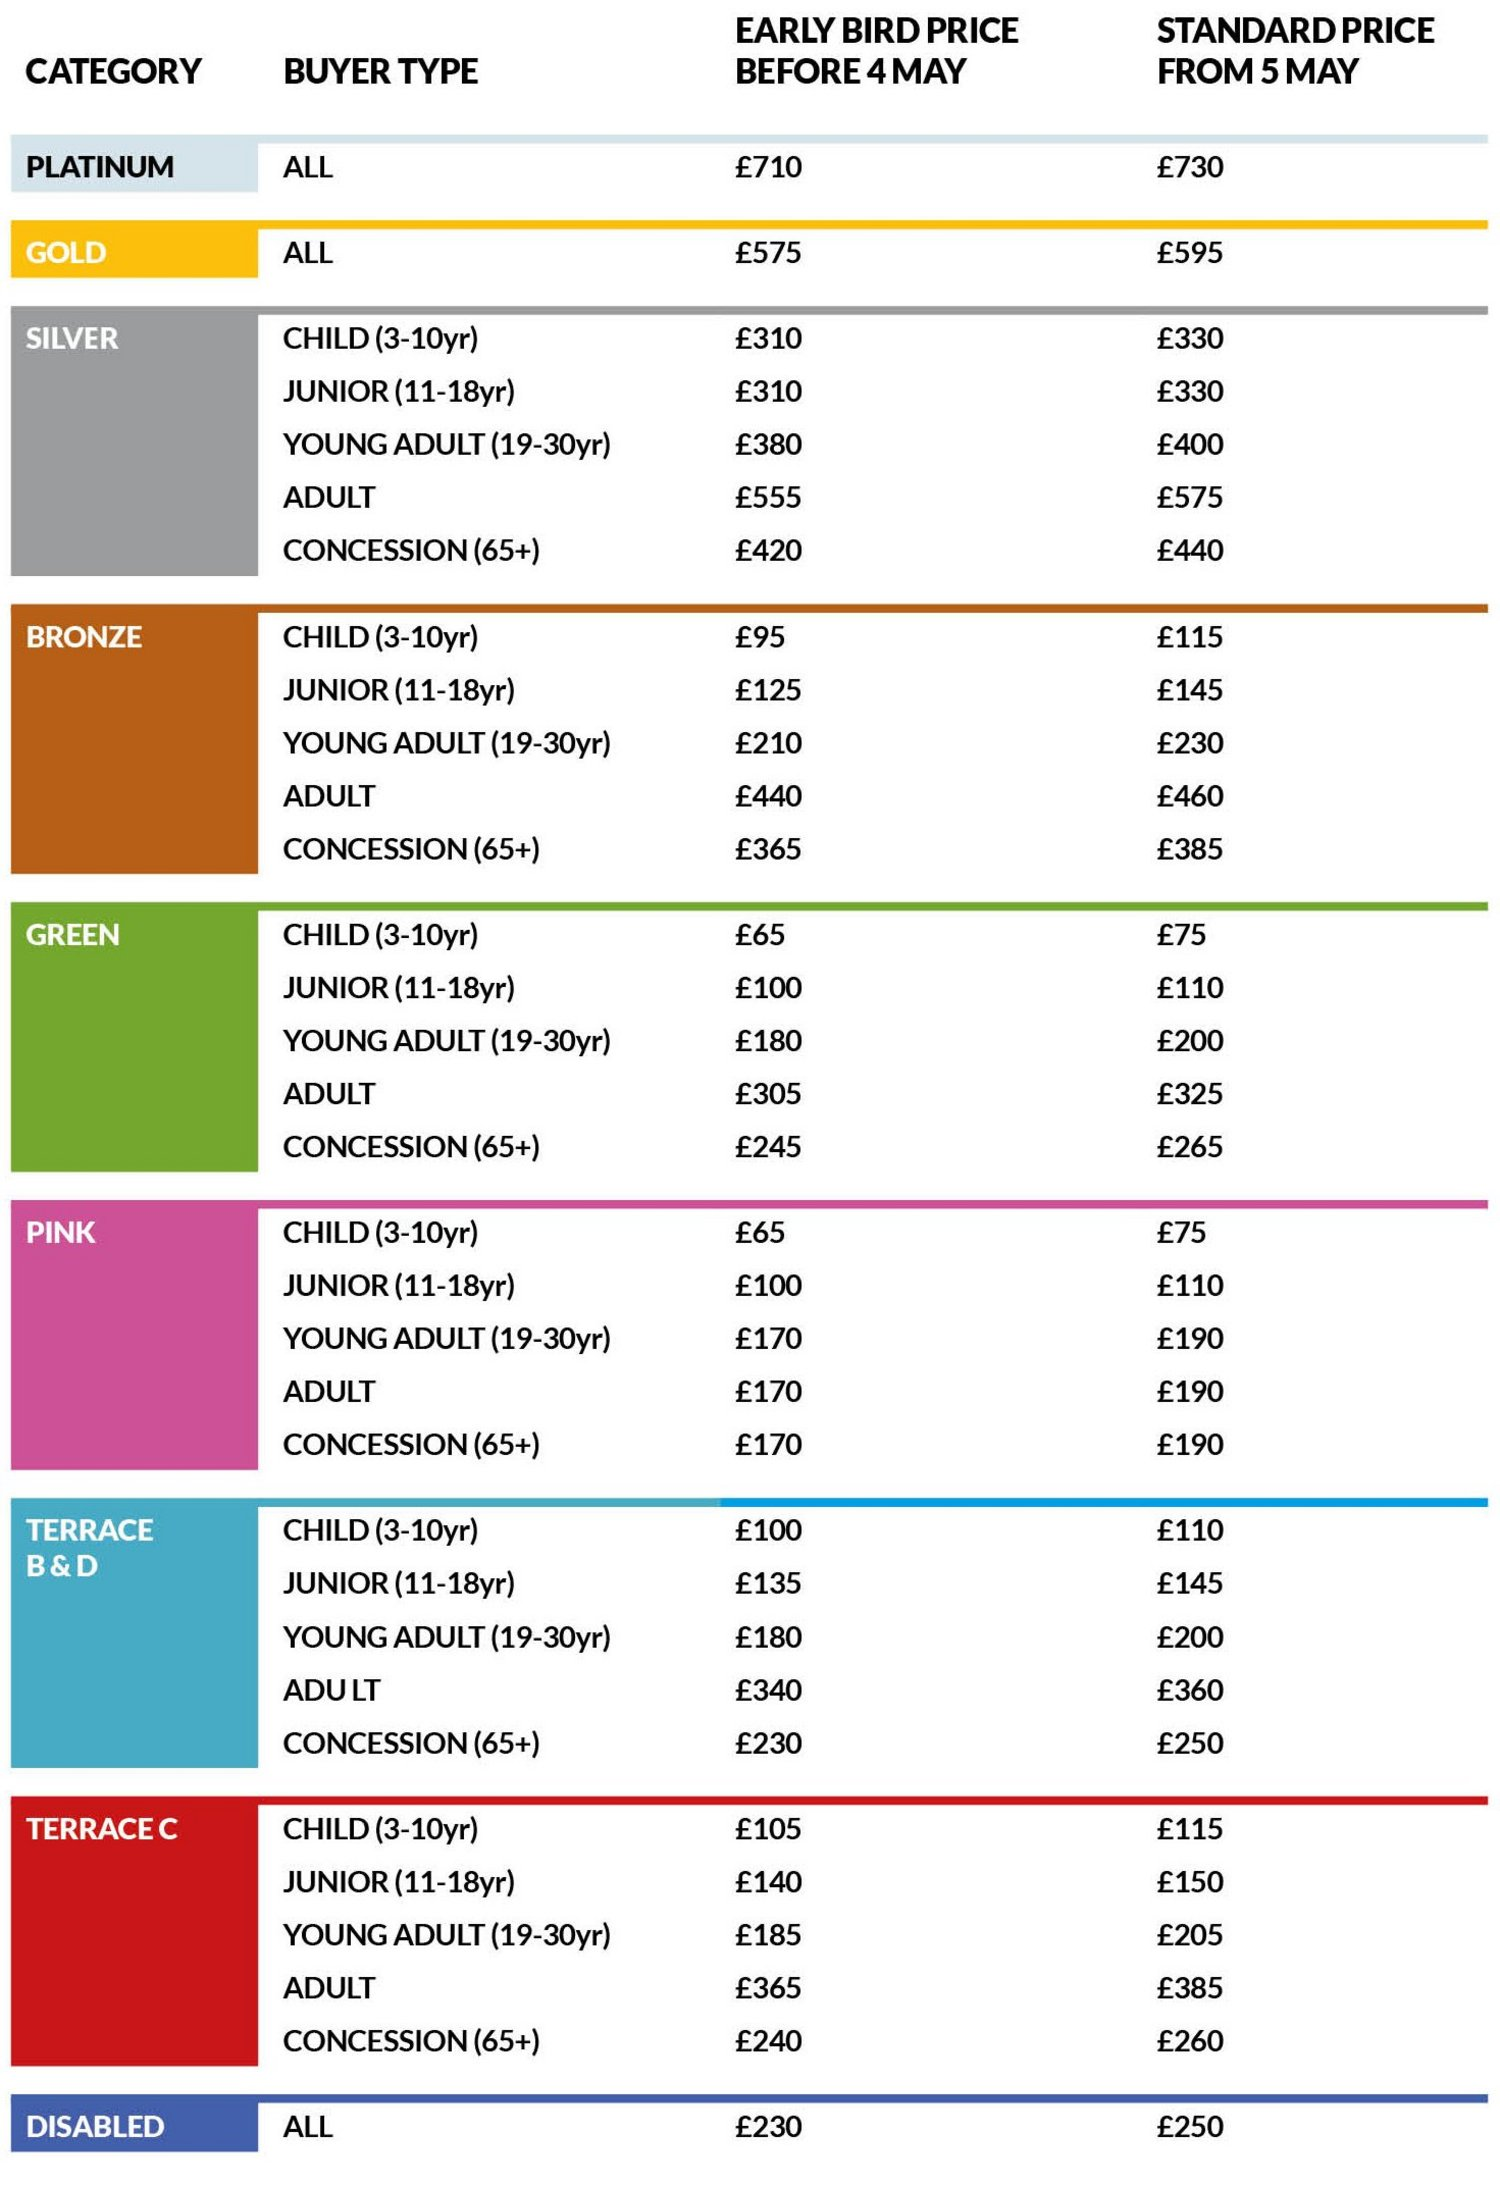 19/20 Season Ticket Pricing